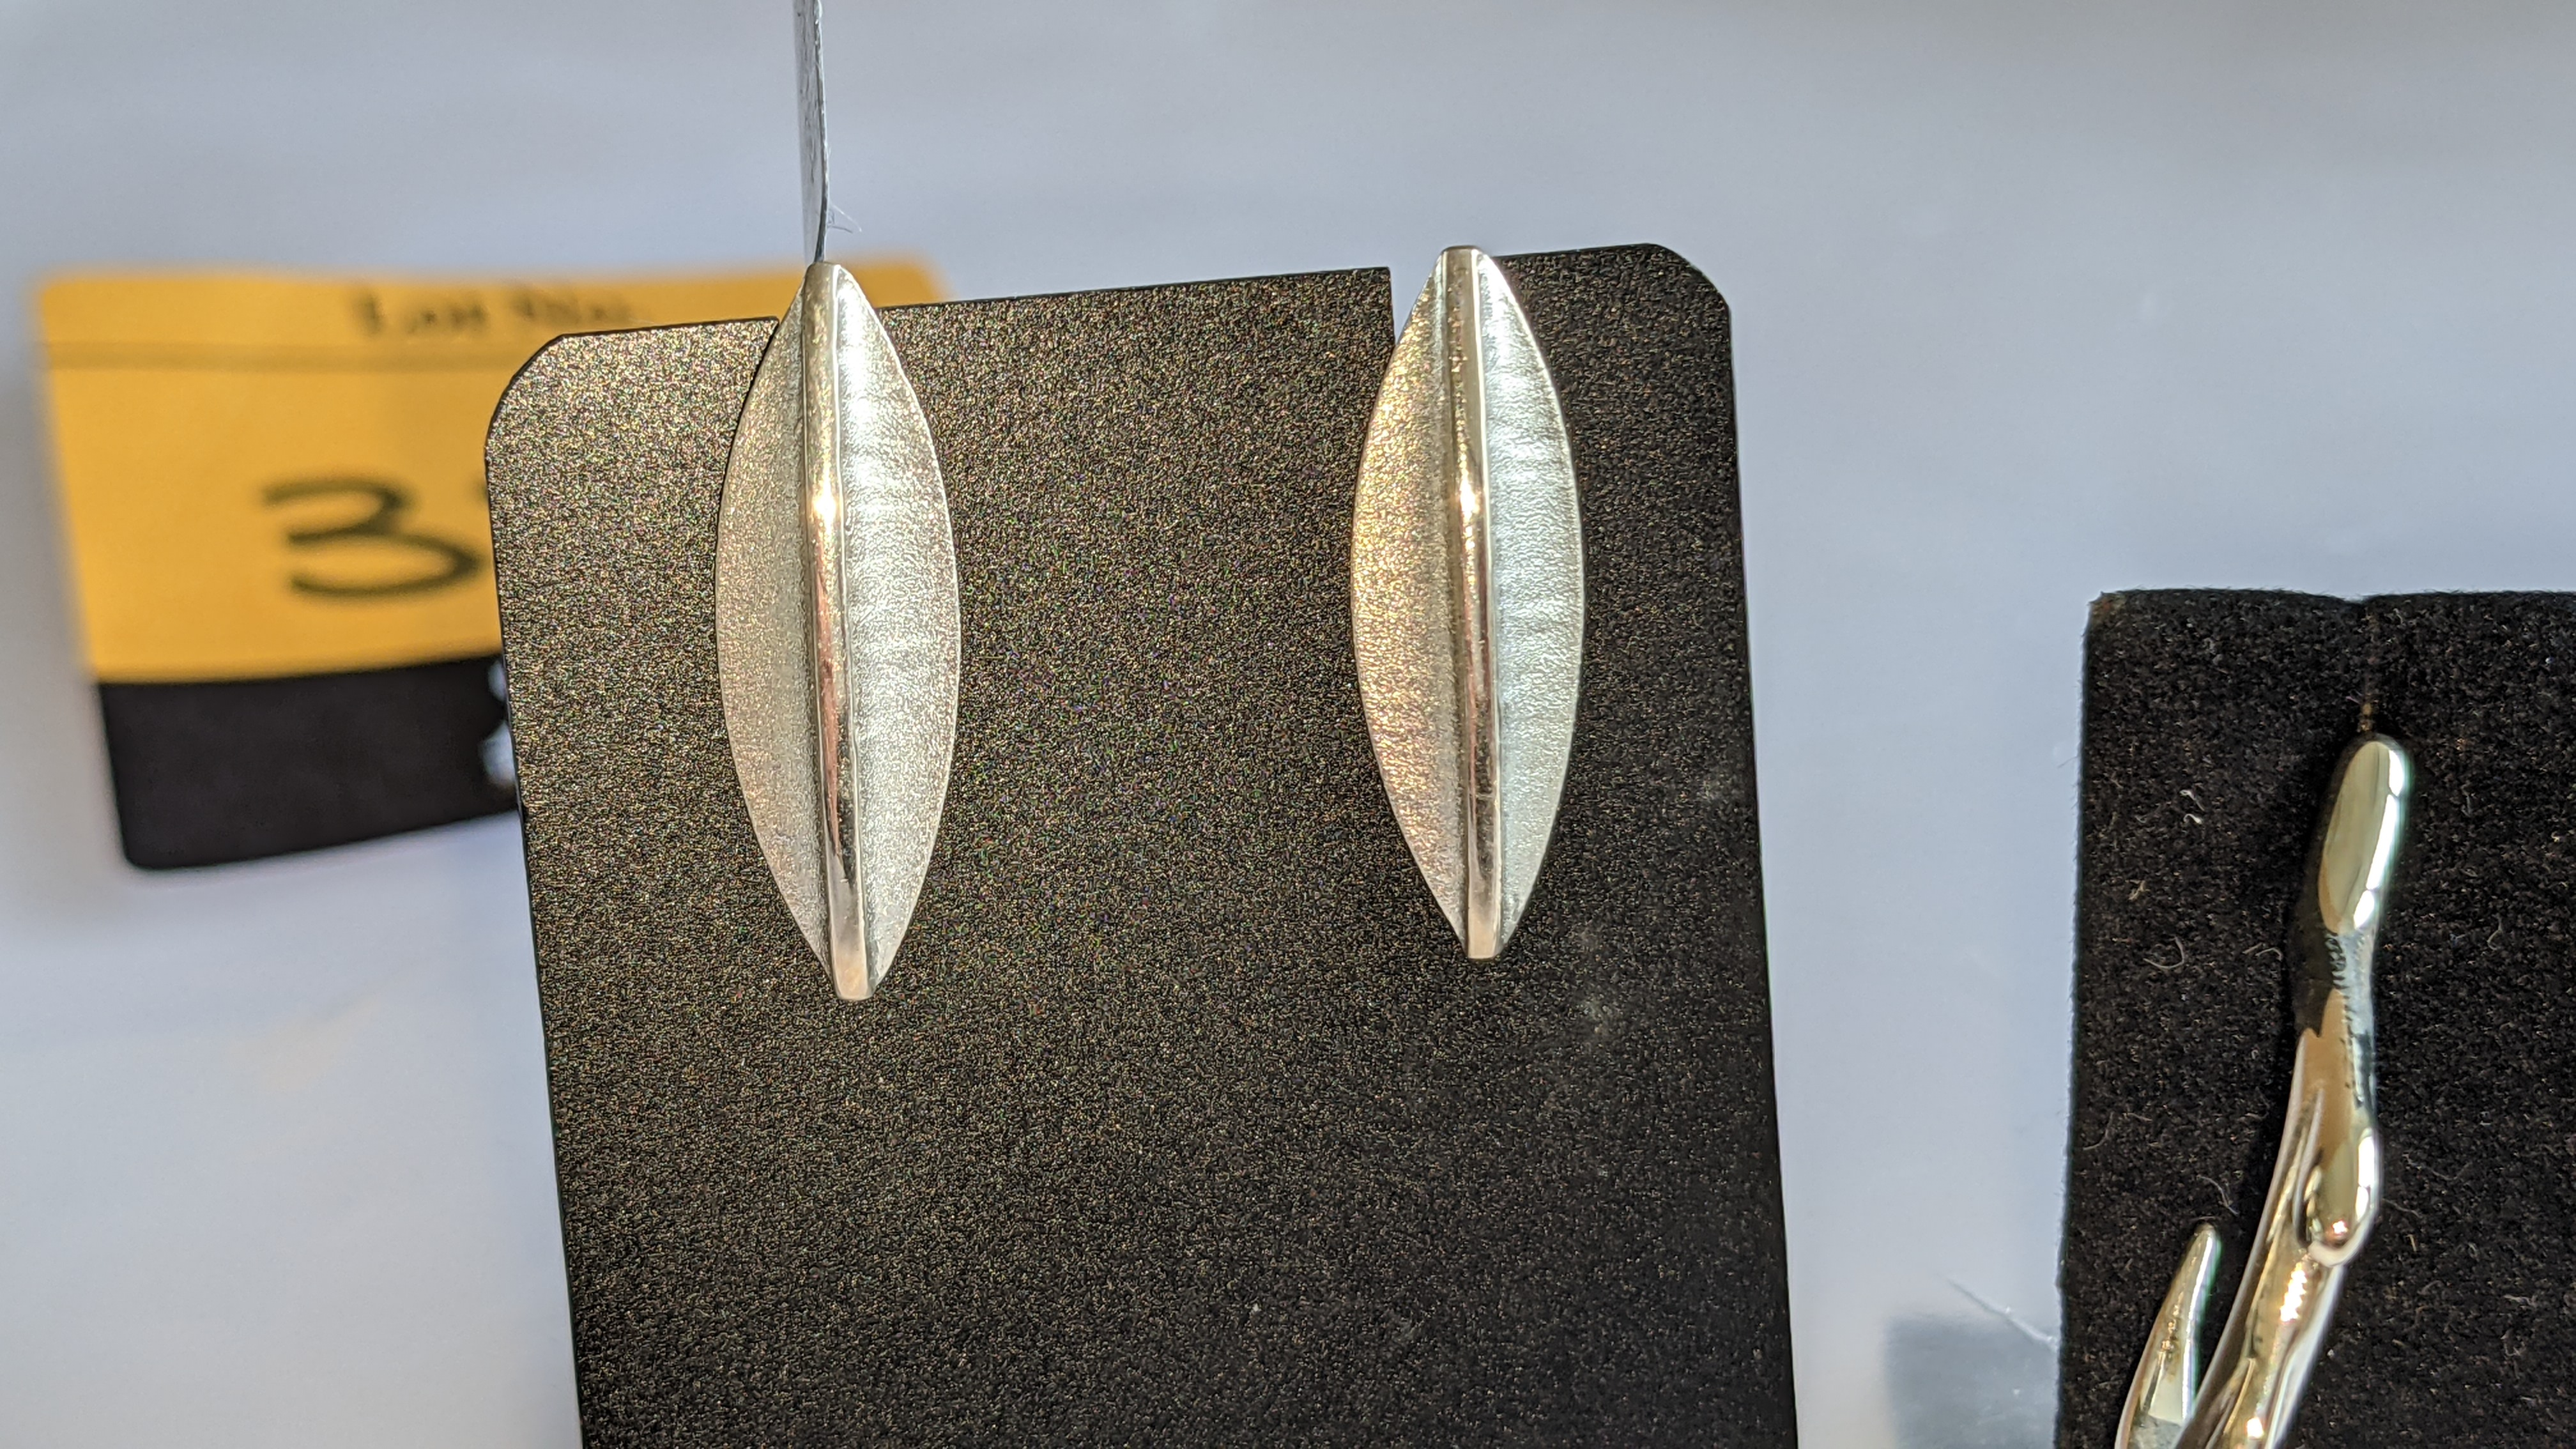 3 assorted pairs of earrings, each with a retail price of £62 - £70 per pair, total RRP £197 - Image 4 of 9